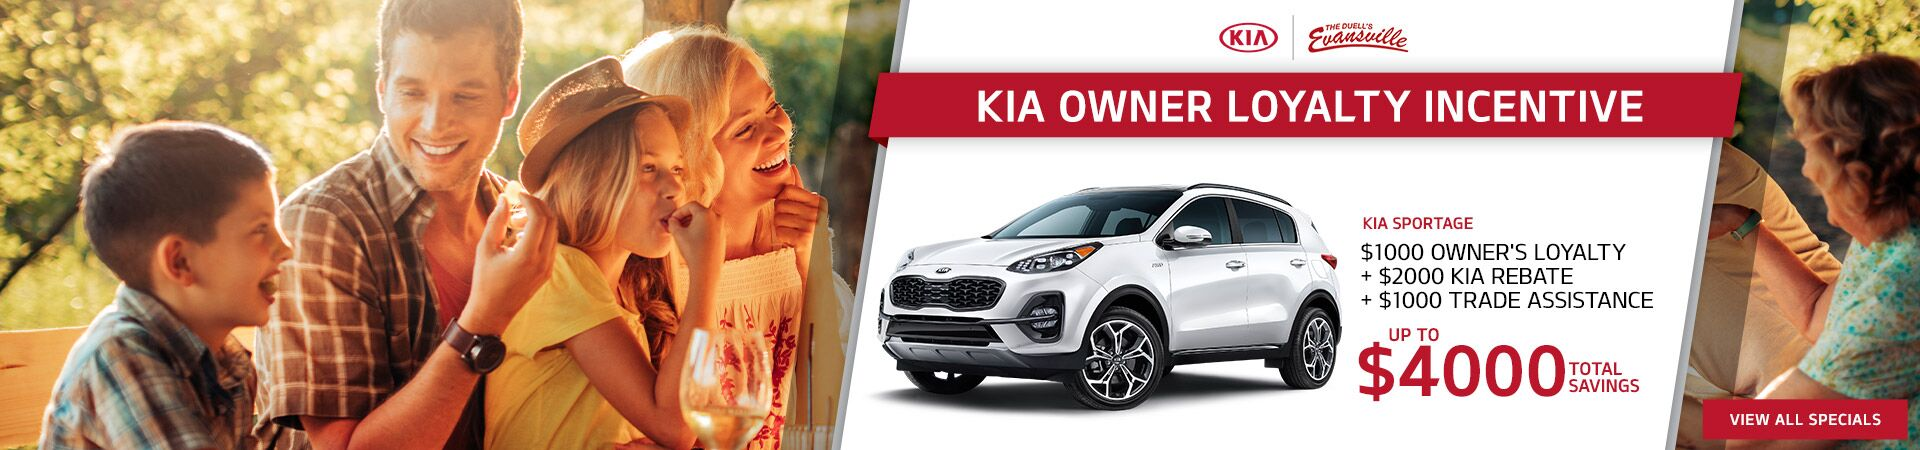 Kia Sportage Owner Loyalty Offer